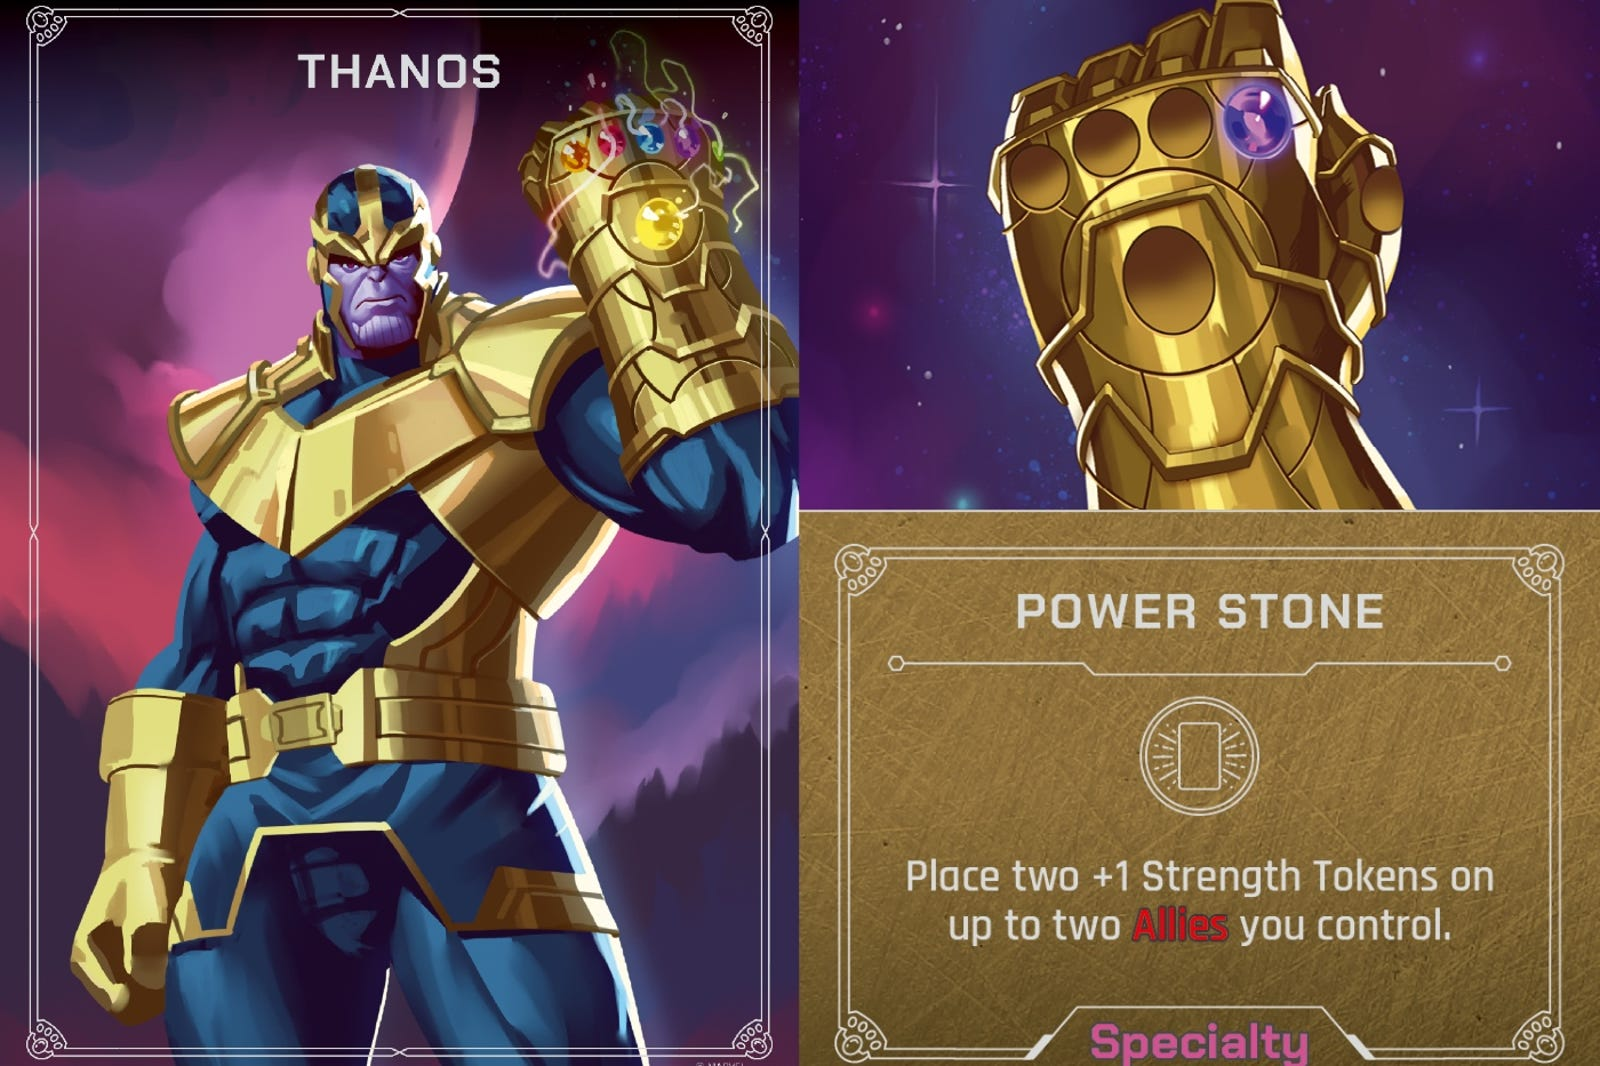 Artist Johnny Morrow worked on the Thanos deck.